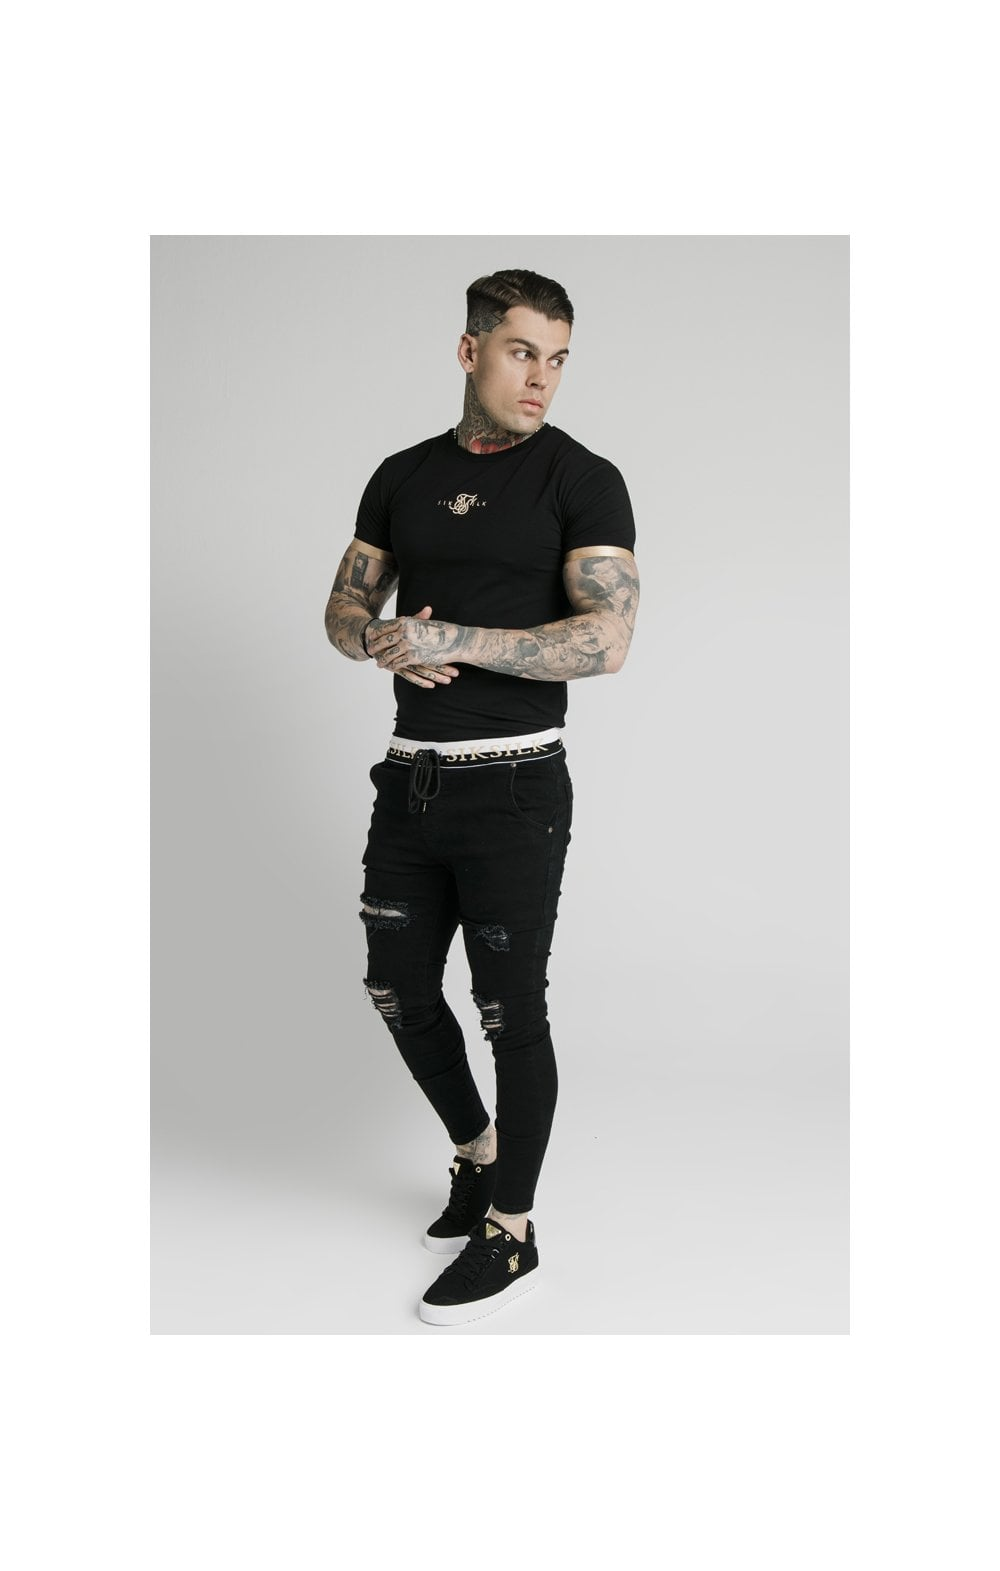 SikSilk S/S Inset Cuff Gym Tee – Black & Gold (7)